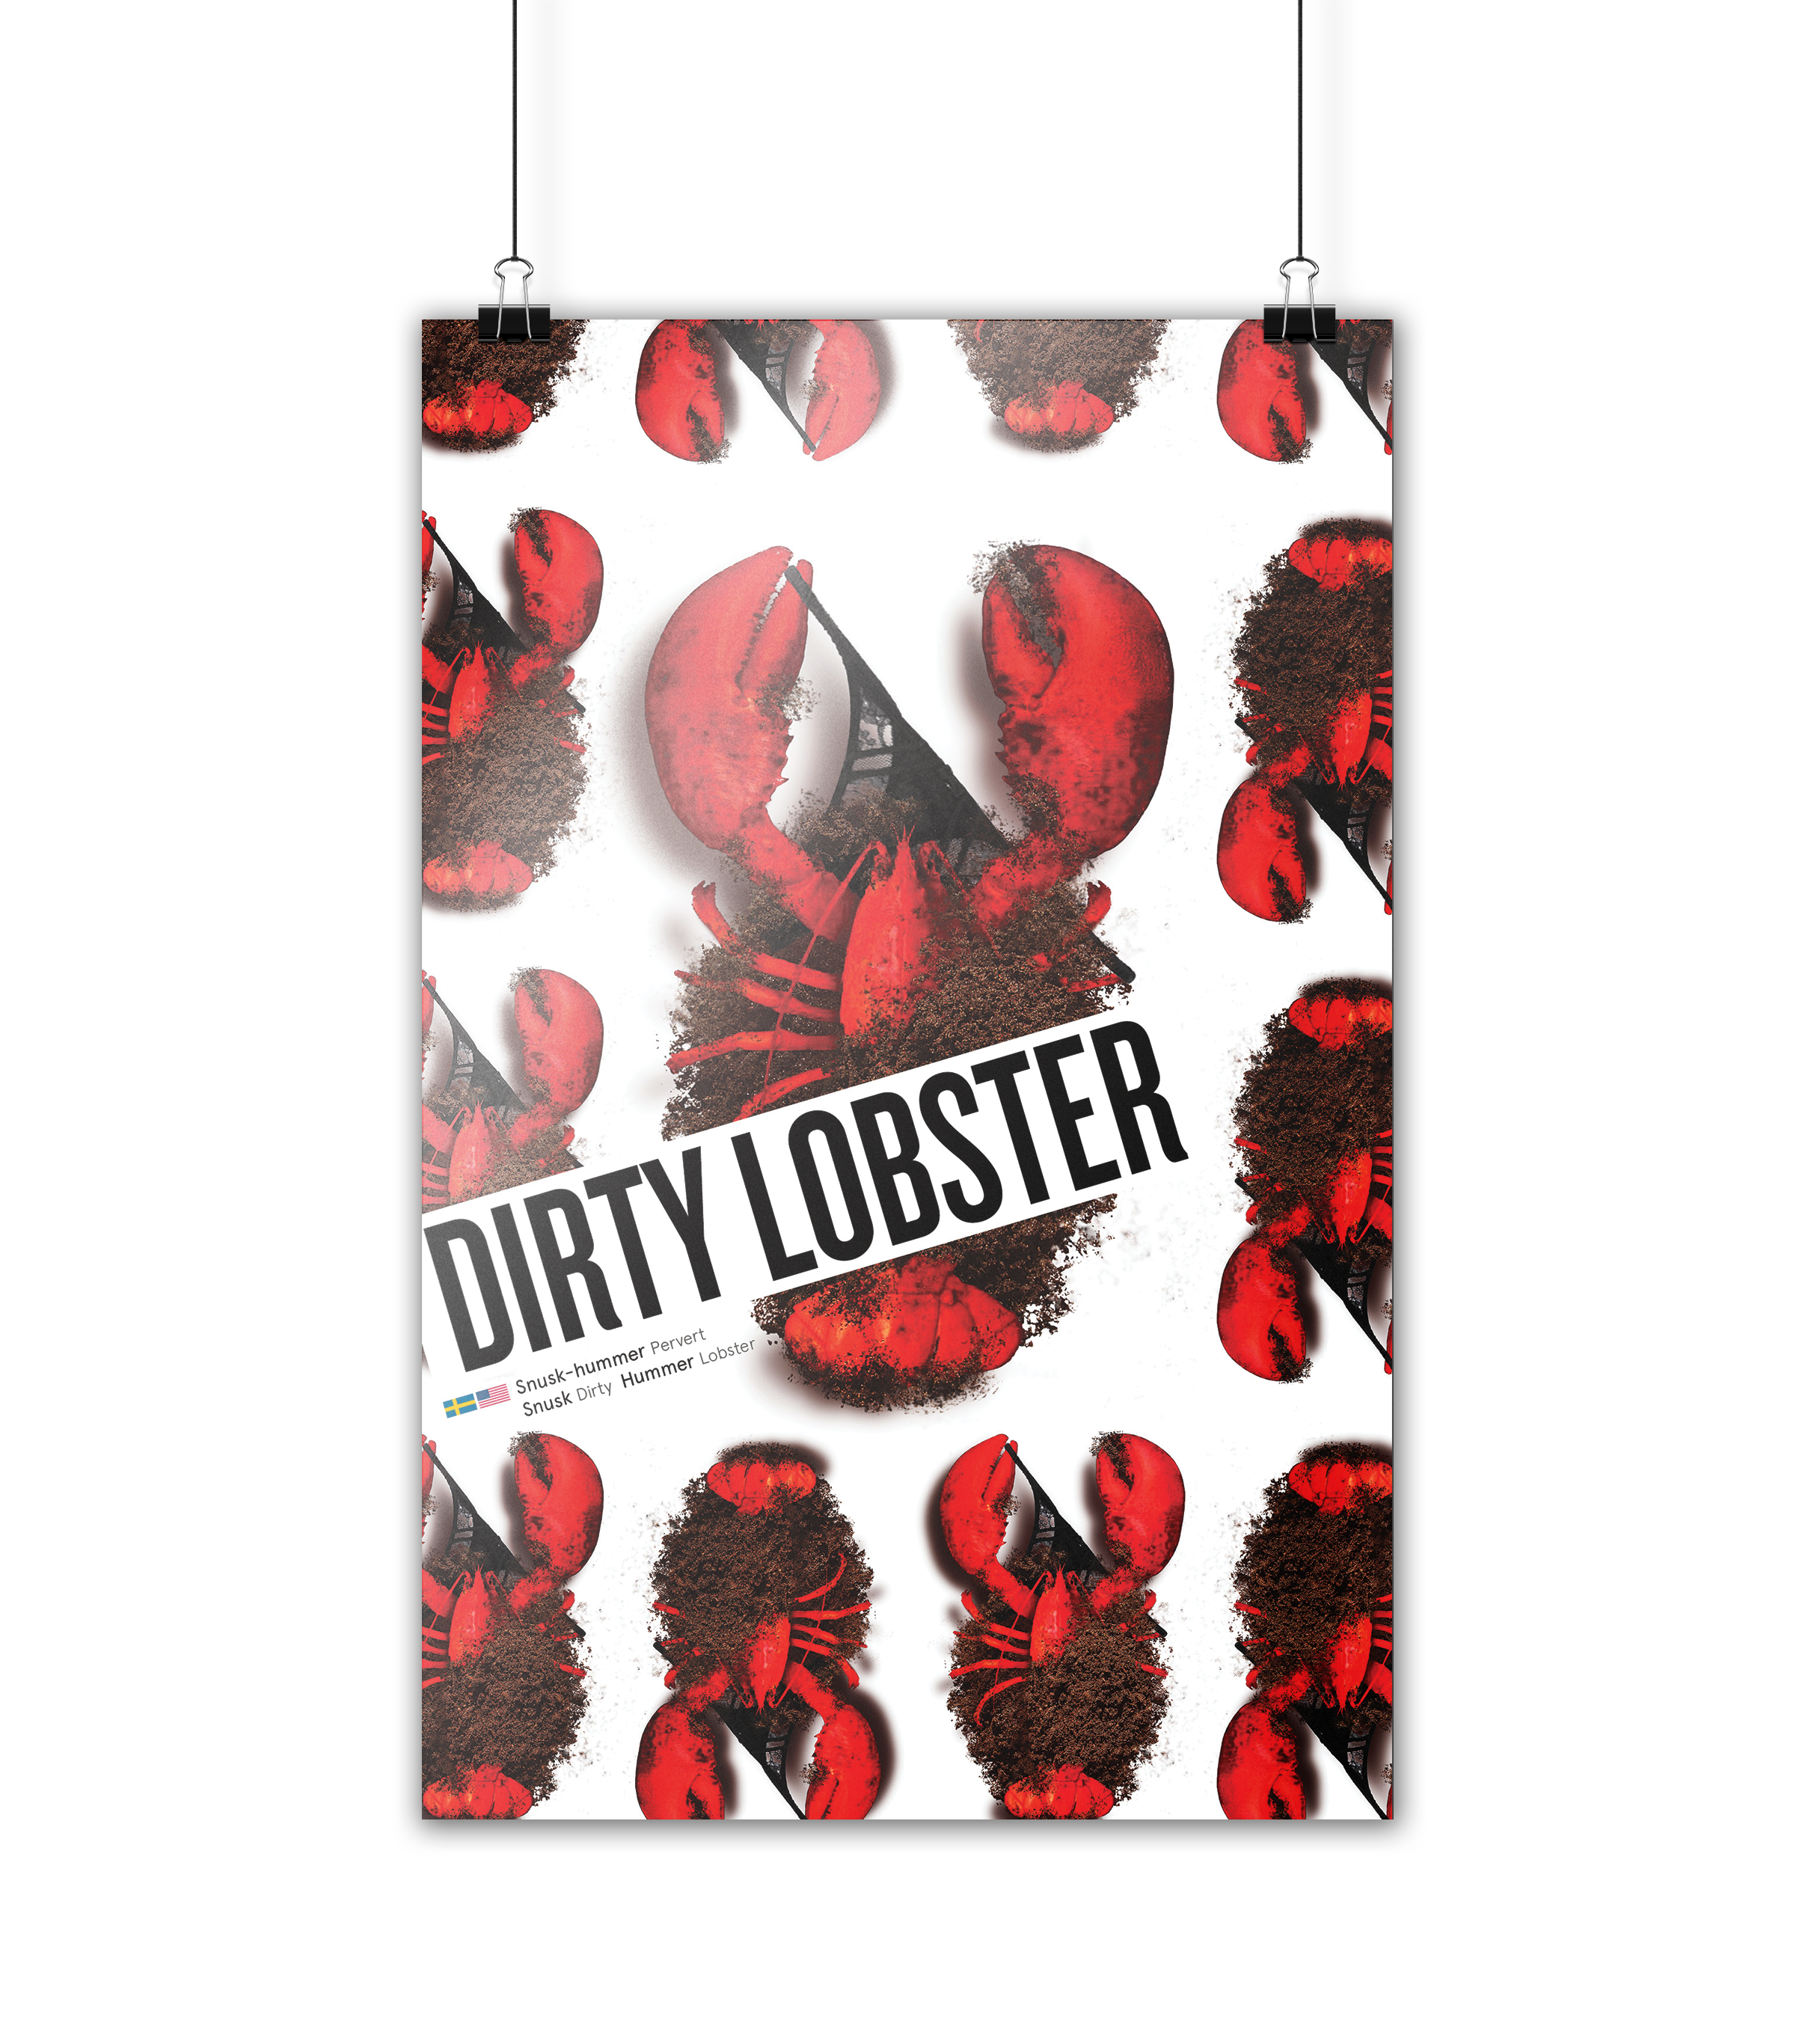 Dirty lobster